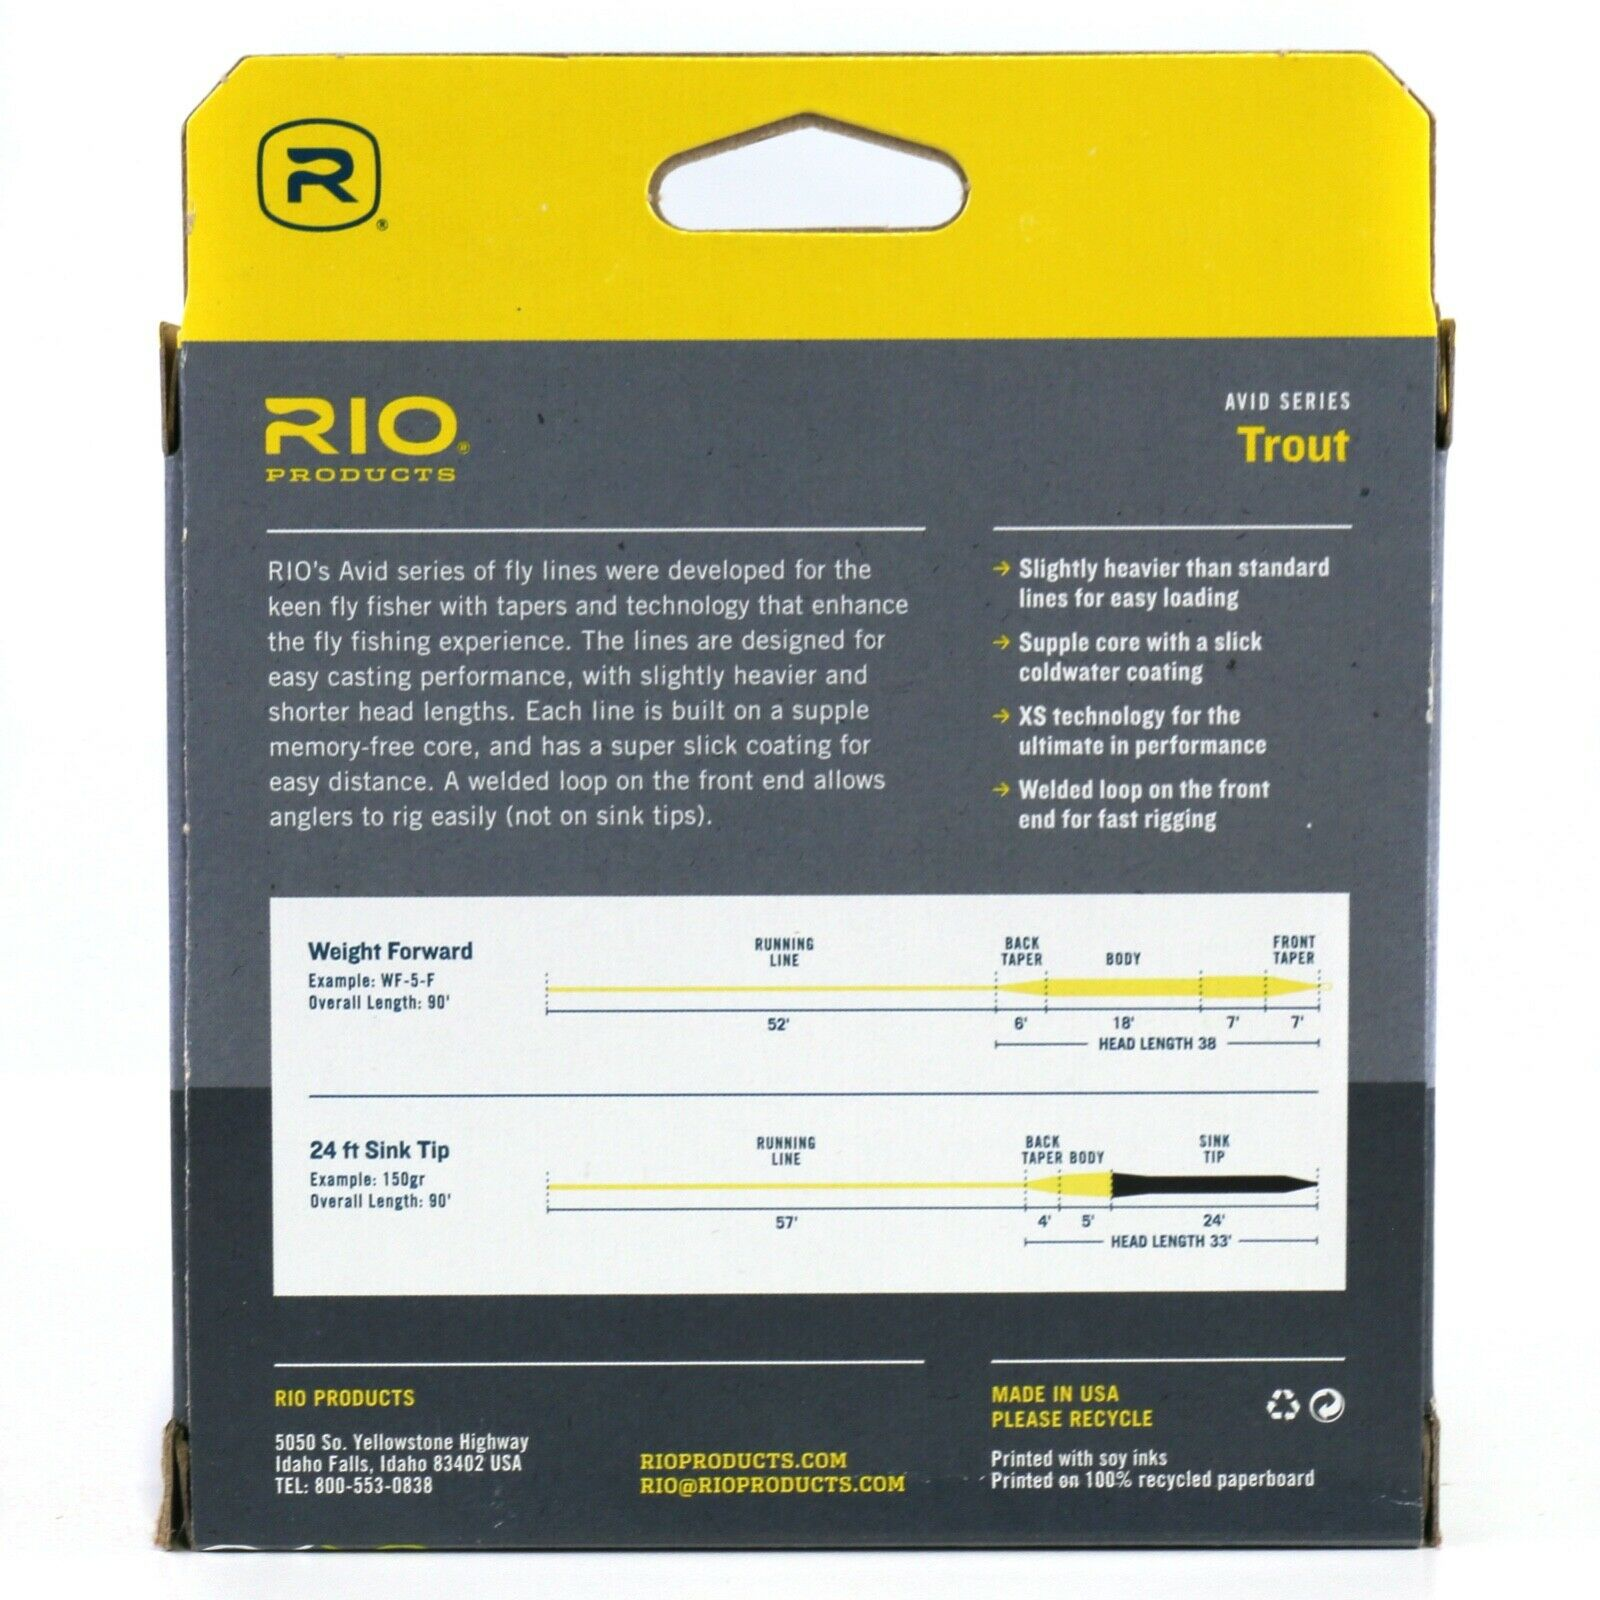 Rio Avid Trout Wf6f Fly Line 90 FT Freshwater for sale online